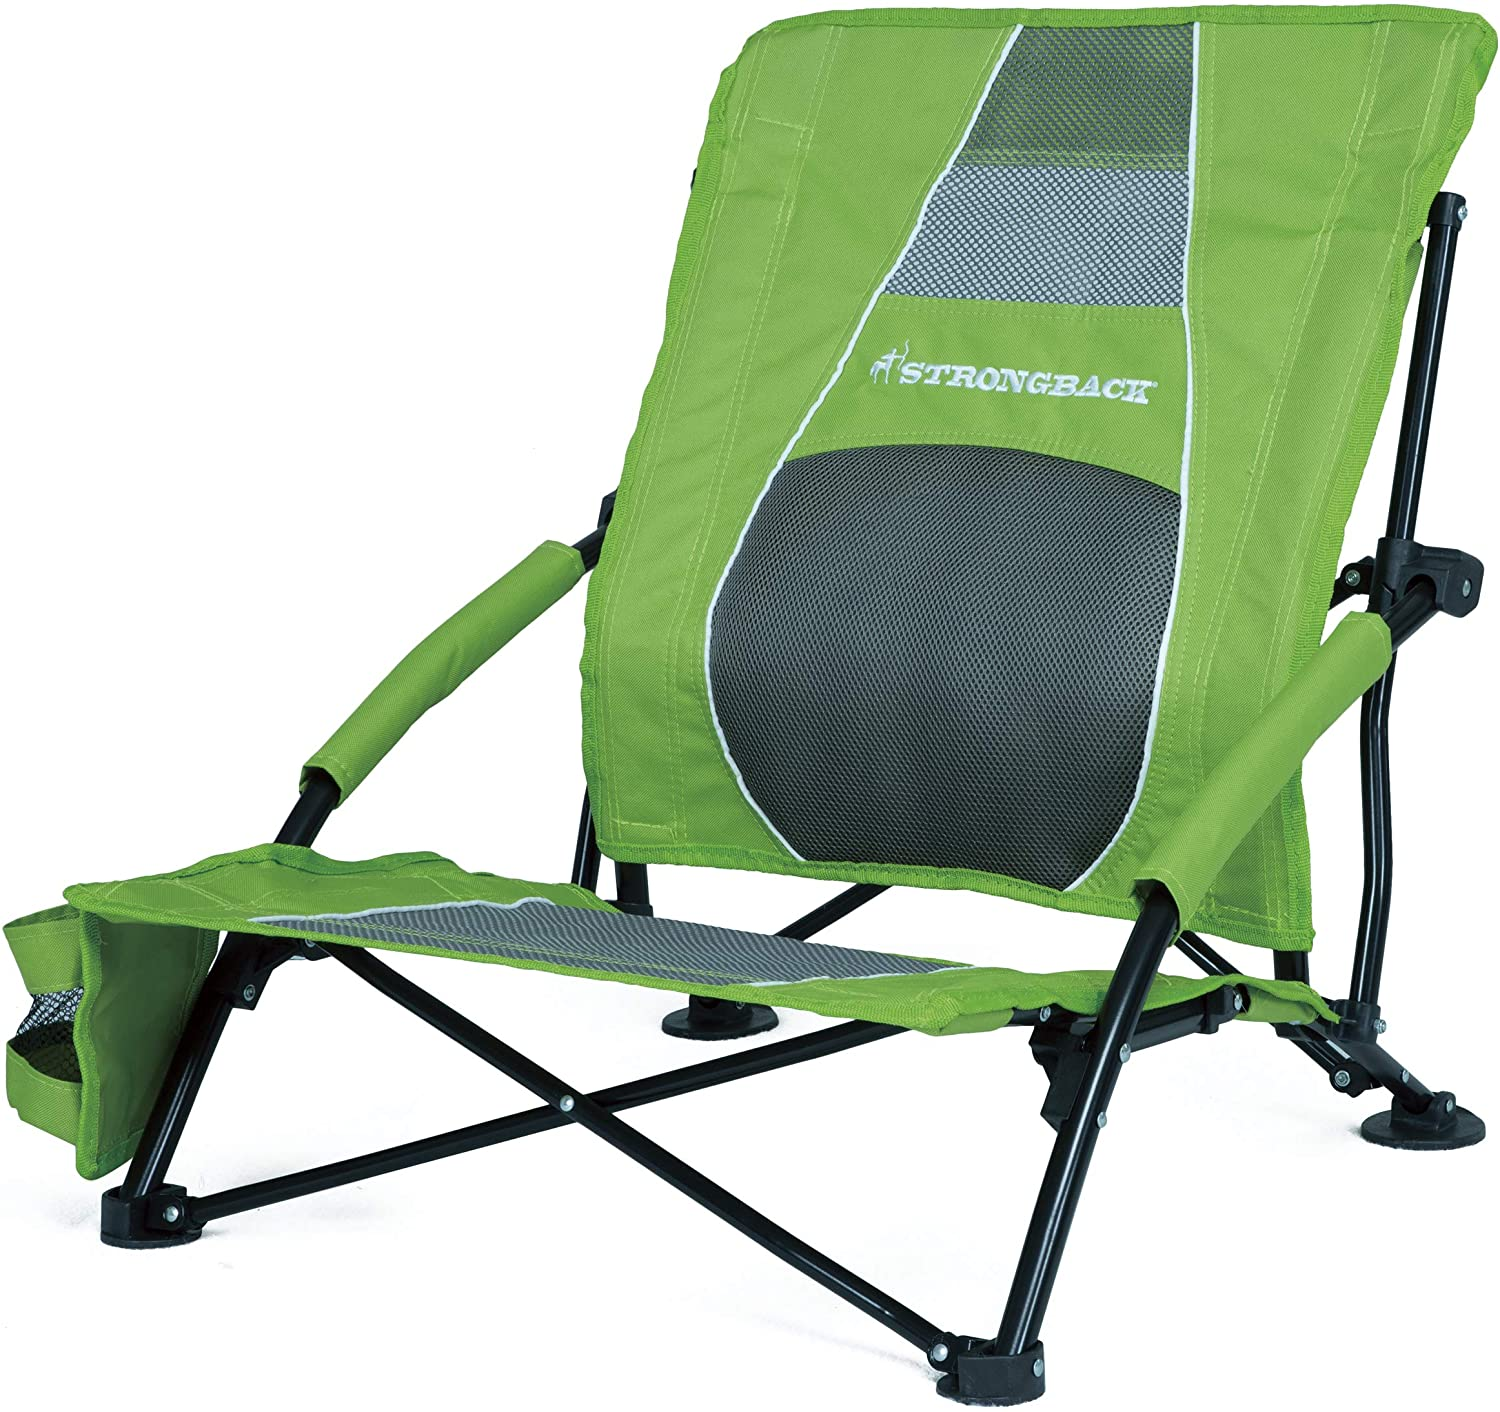 STRONGBACK Low Gravity Foldable Beach Chair